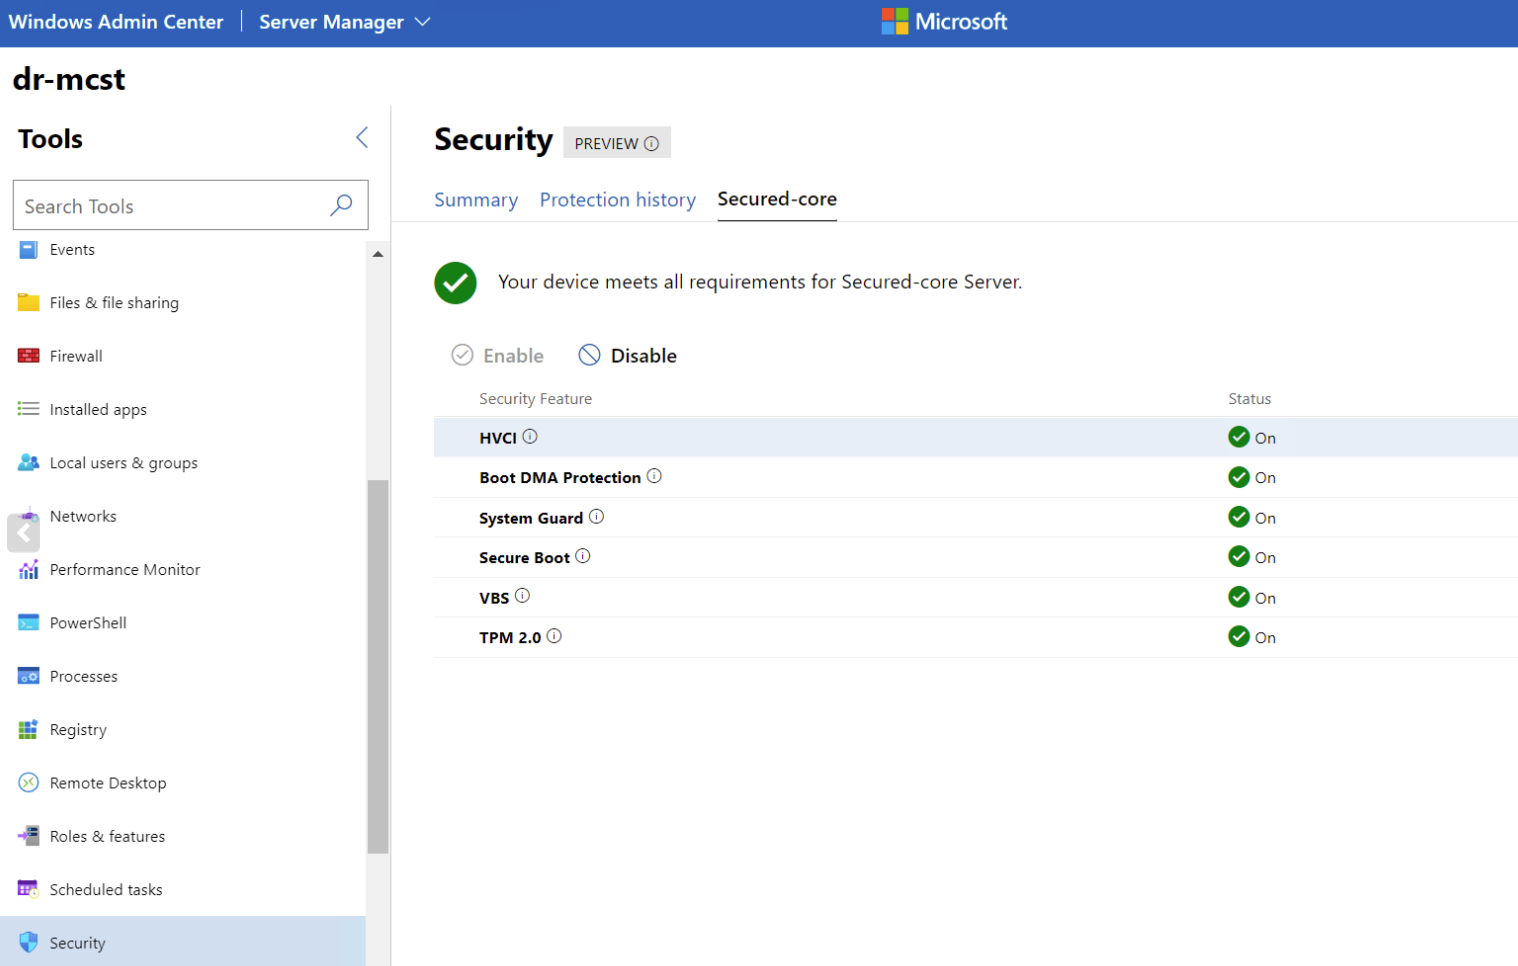 Secured-core features in Windows Admin Center